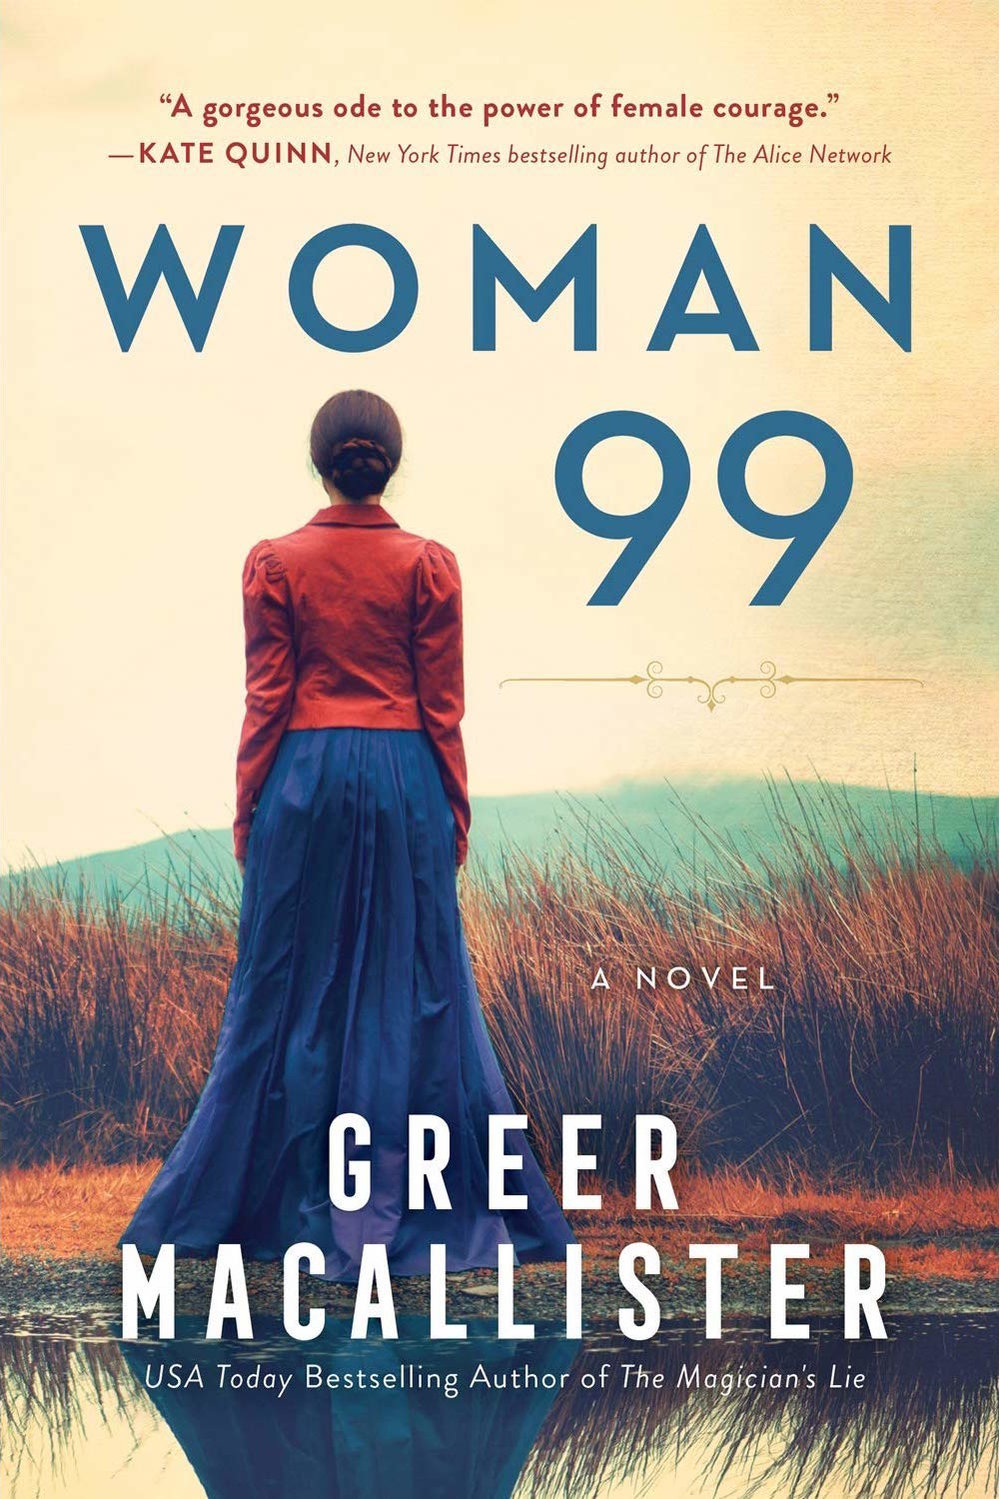 Woman 99  by Greer Macallister  Sourcebooks —- March 5, 2019